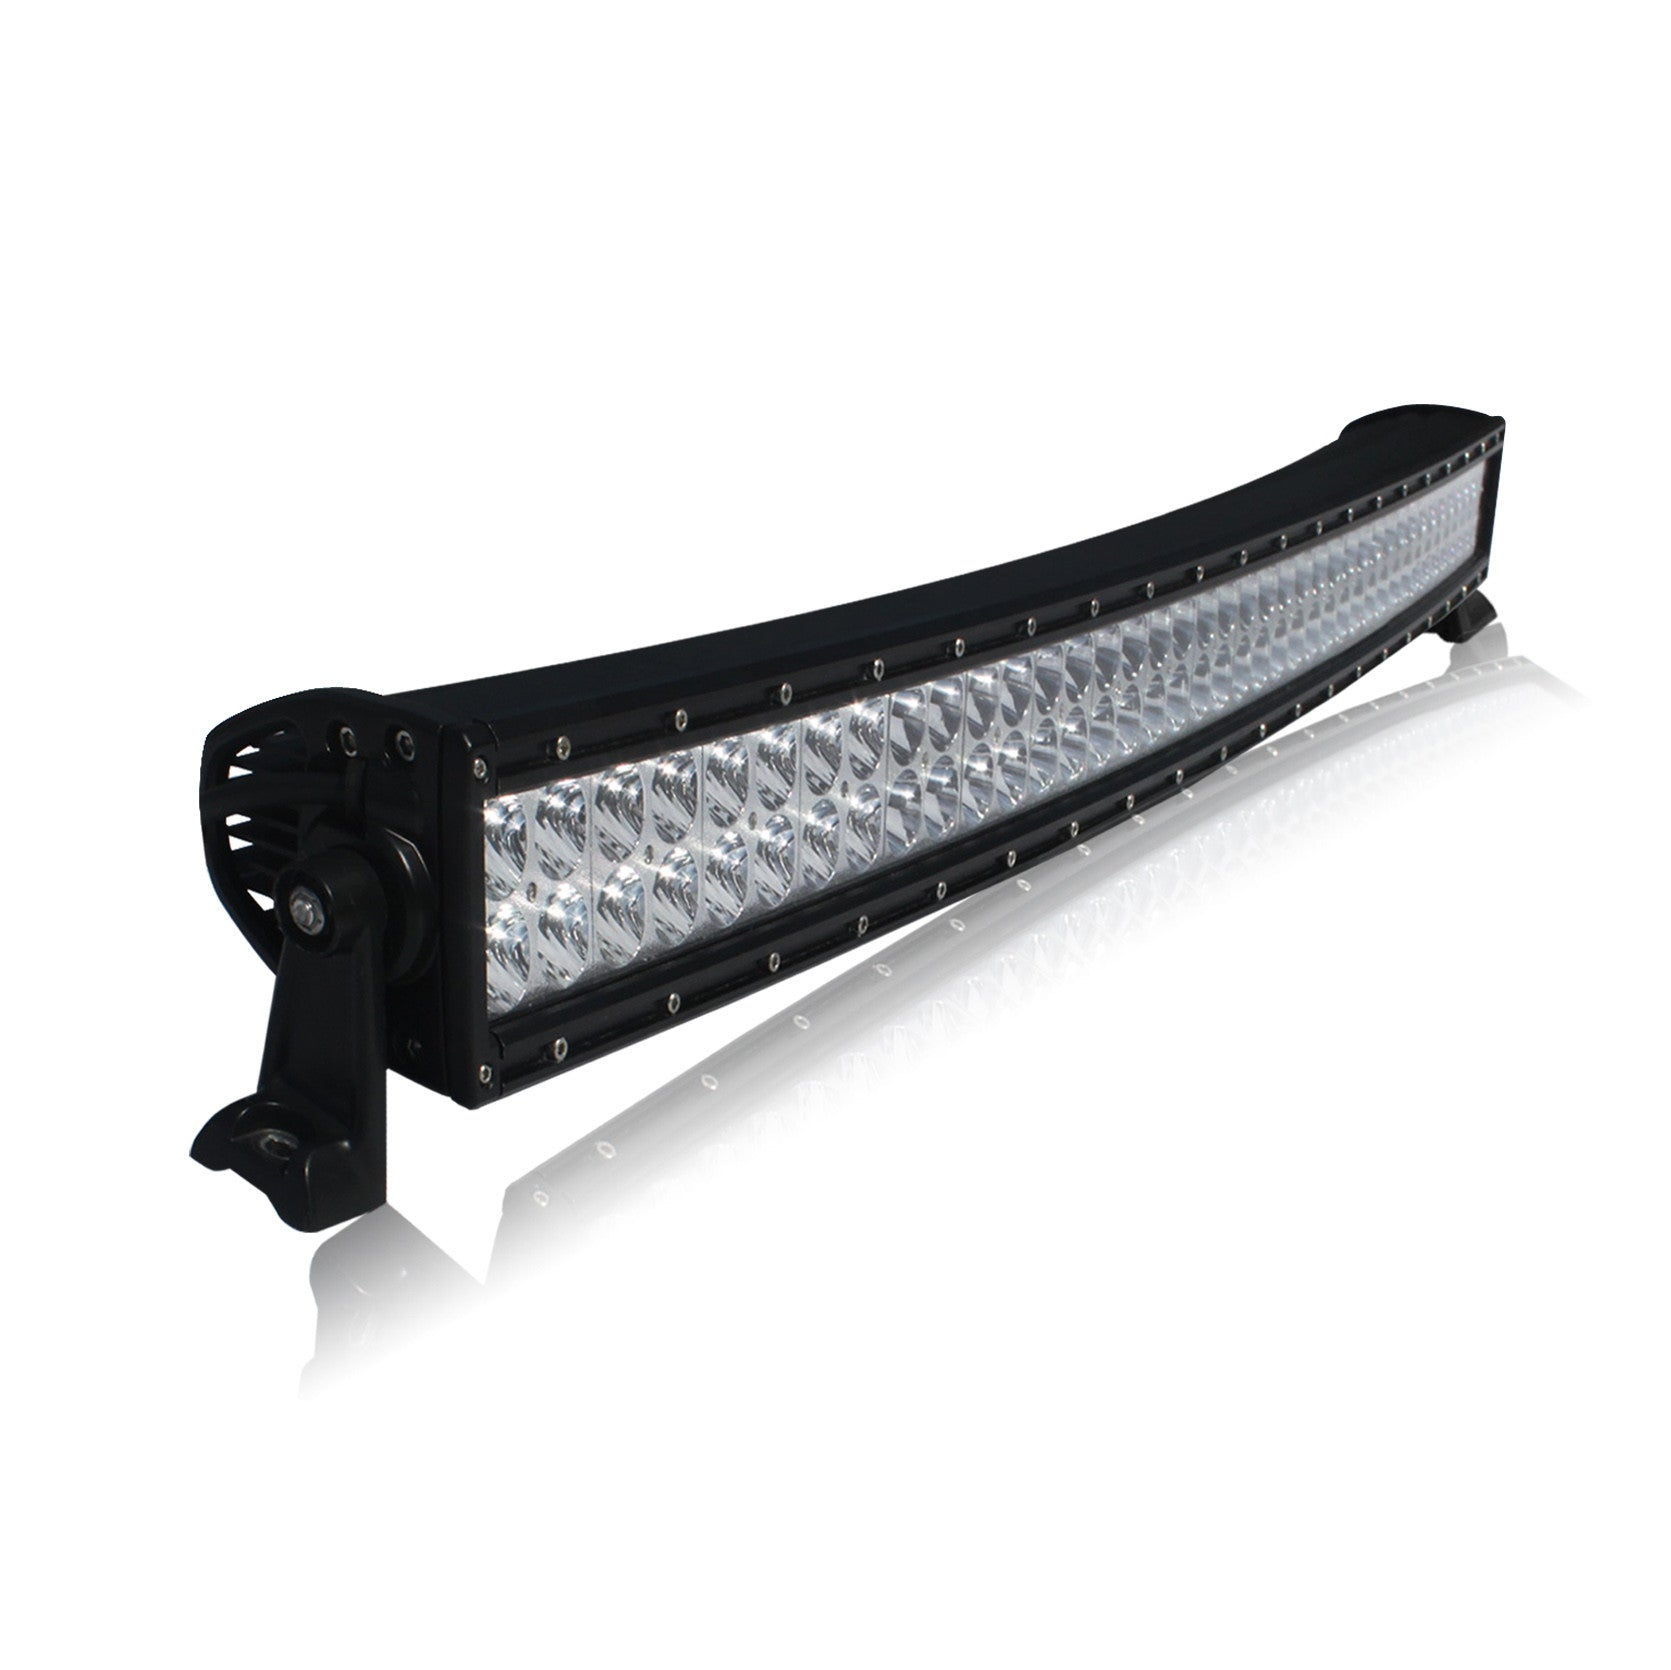 curved led light bars low profile led light bar. Black Bedroom Furniture Sets. Home Design Ideas